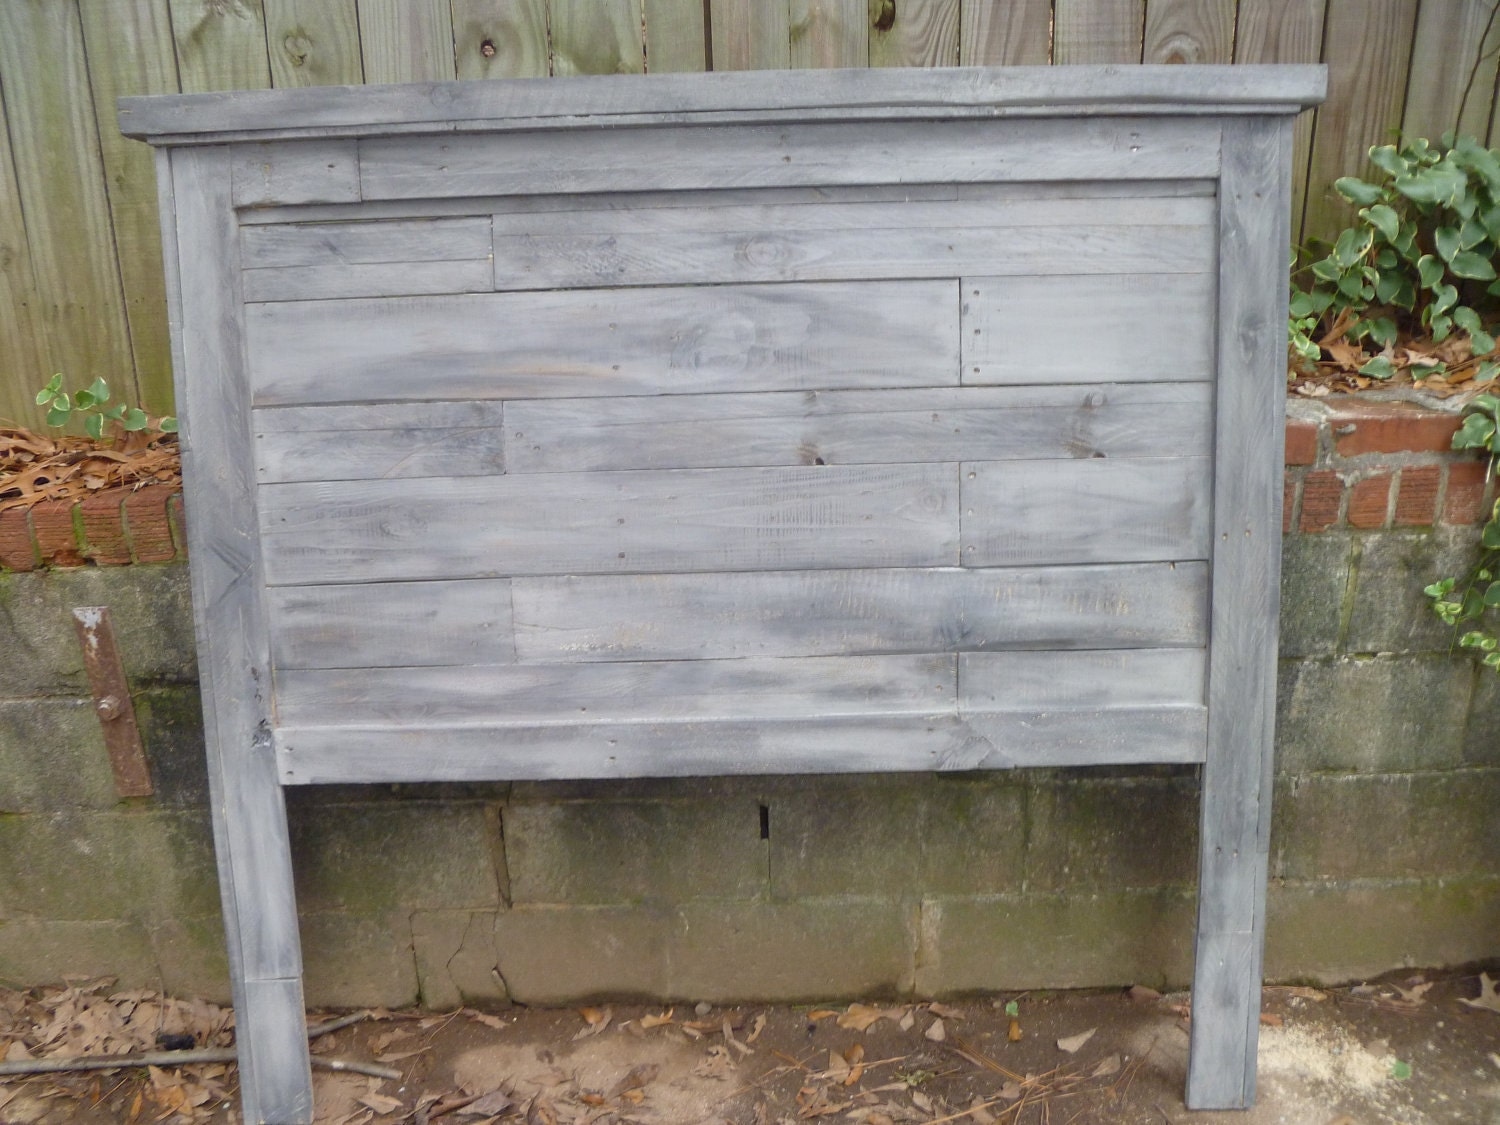 Pallet farmhouse style headboards full size for How to make a king size headboard out of pallets